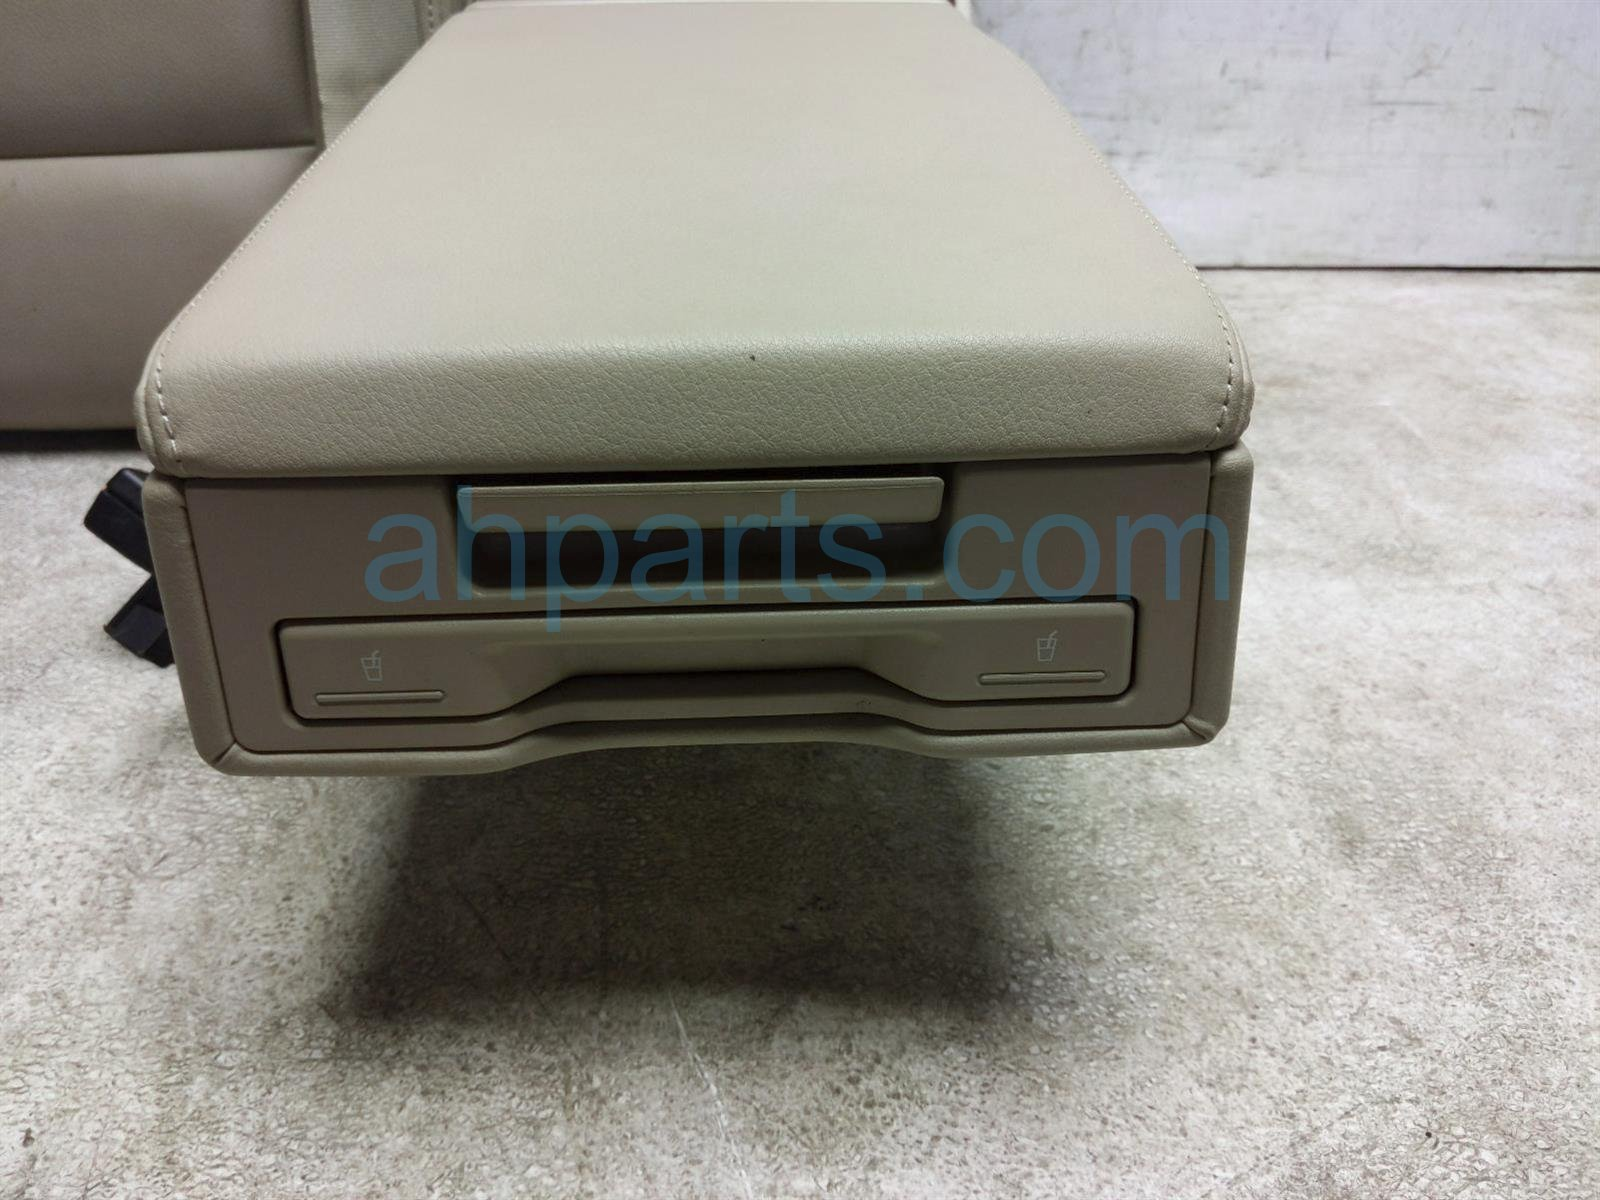 2011 Audi A6 Audi Back (2nd Row) Rear Passenger Seat Top Cushion   Tan Leather 4F0 885 806 AQ VTS Replacement